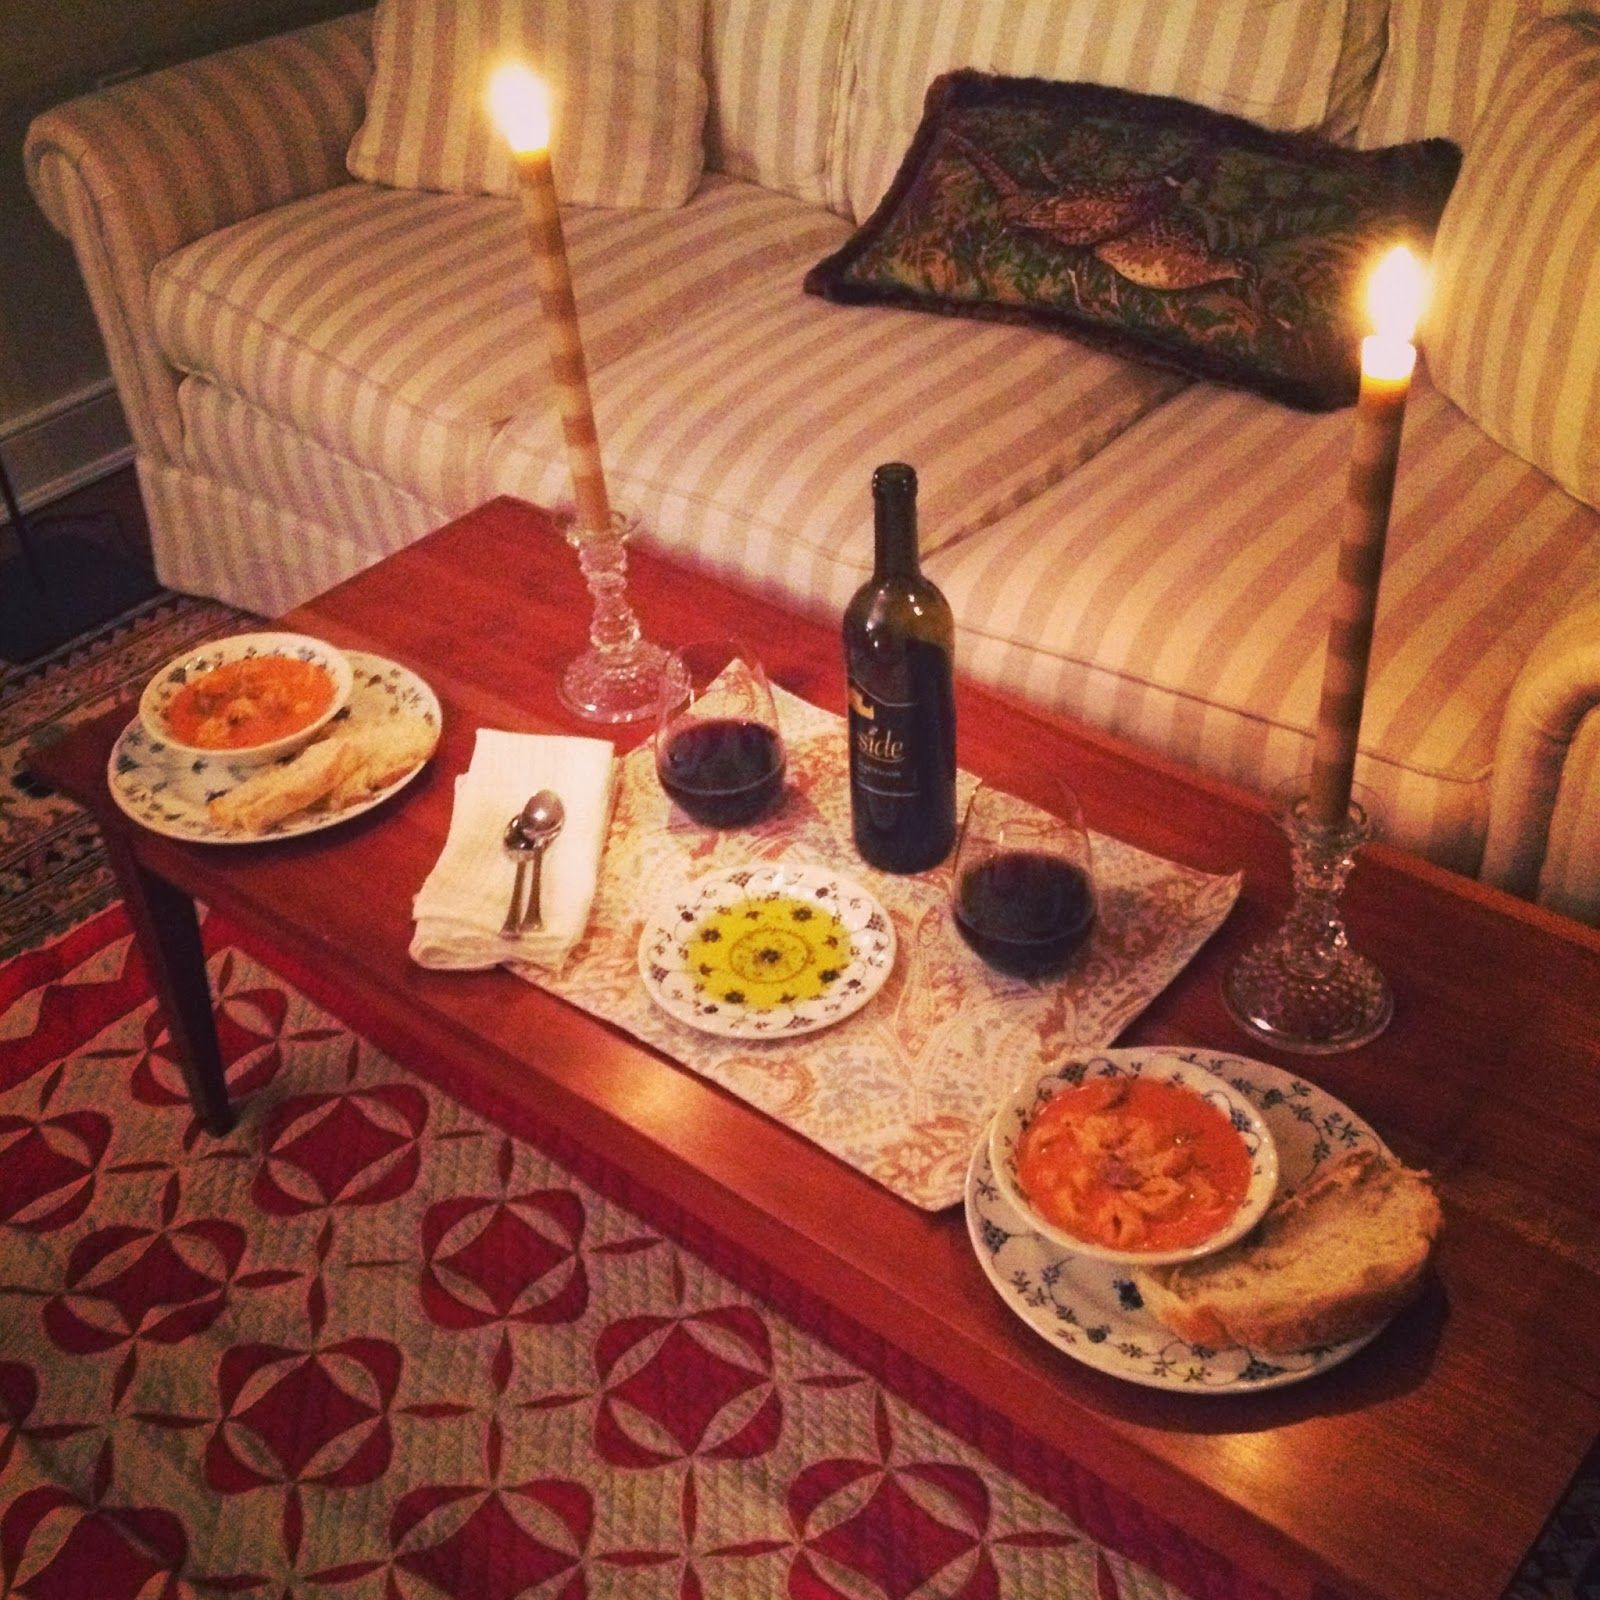 Living Room Picnic Google Search Romantic Dinners Candle Light Dinner Romantic Living Room